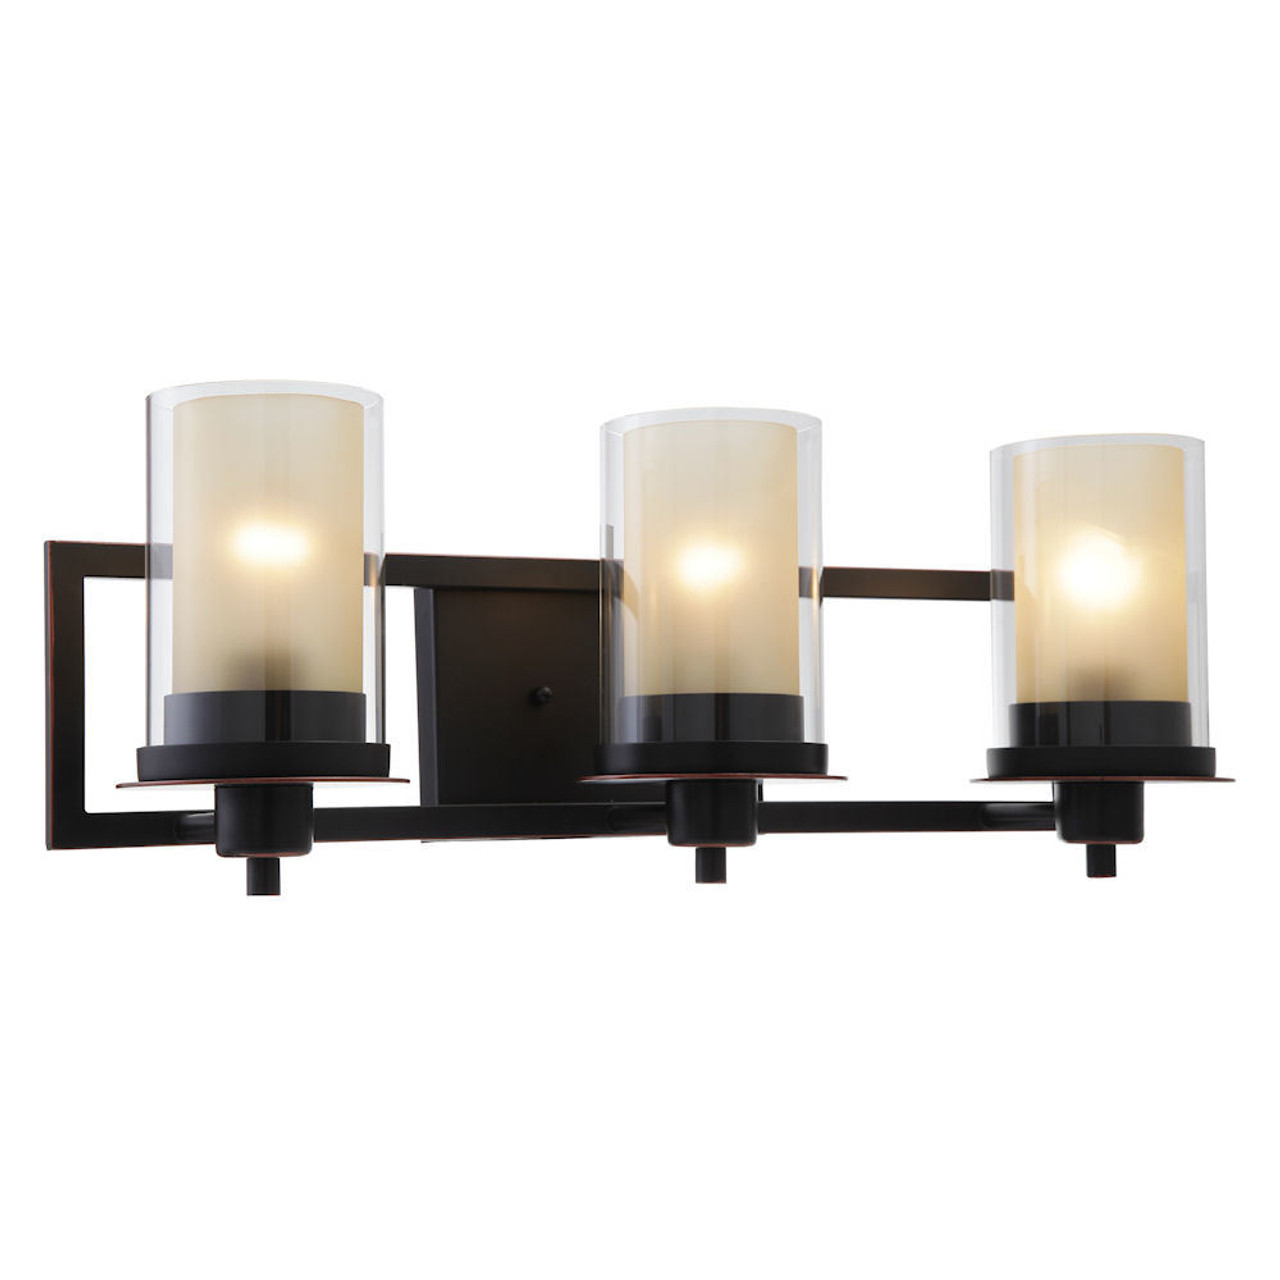 Juno Oil Rubbed Bronze 3 Light Wall Sconce / Bathroom ... on Bathroom Wall Sconce Lighting id=38705